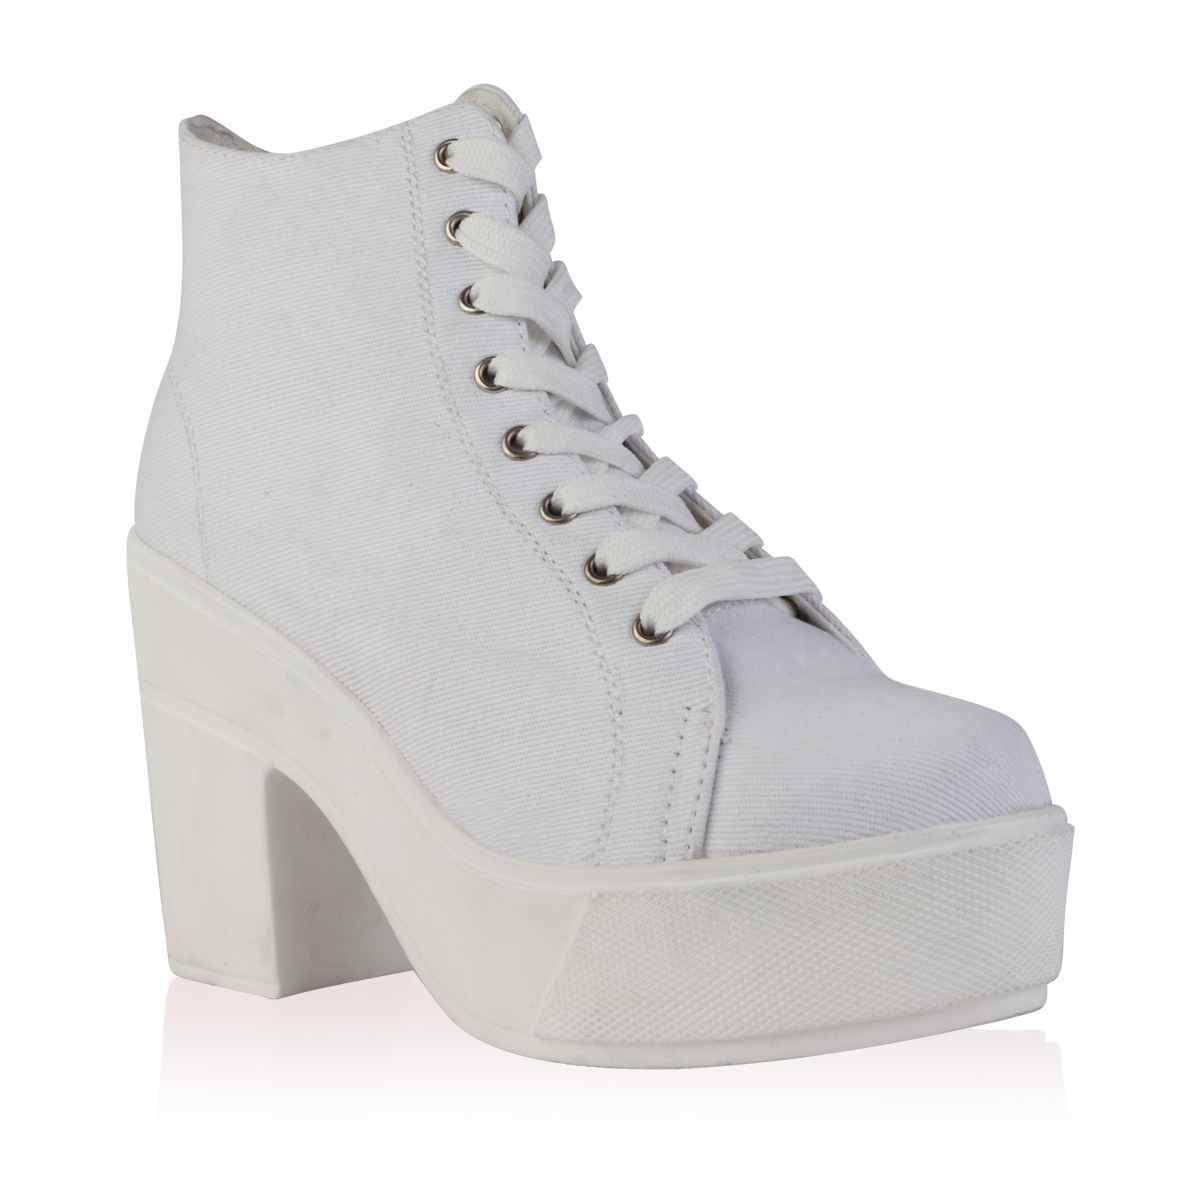 White Chunky Heel Boots - Is Heel